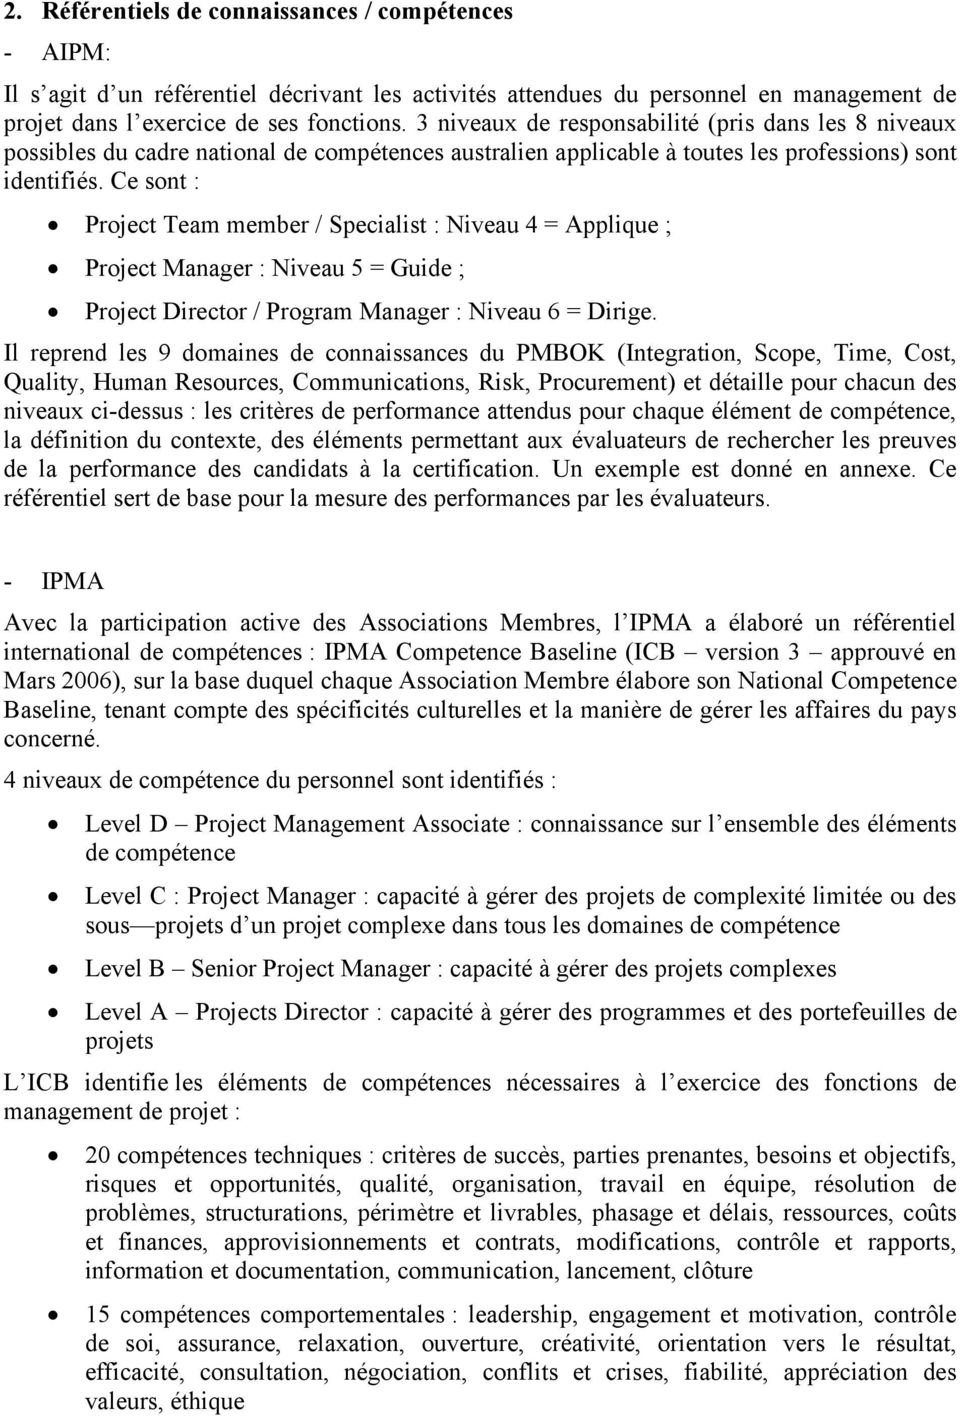 Ce sont : Project Team member / Specialist : Niveau 4 = Applique ; Project Manager : Niveau 5 = Guide ; Project Director / Program Manager : Niveau 6 = Dirige.